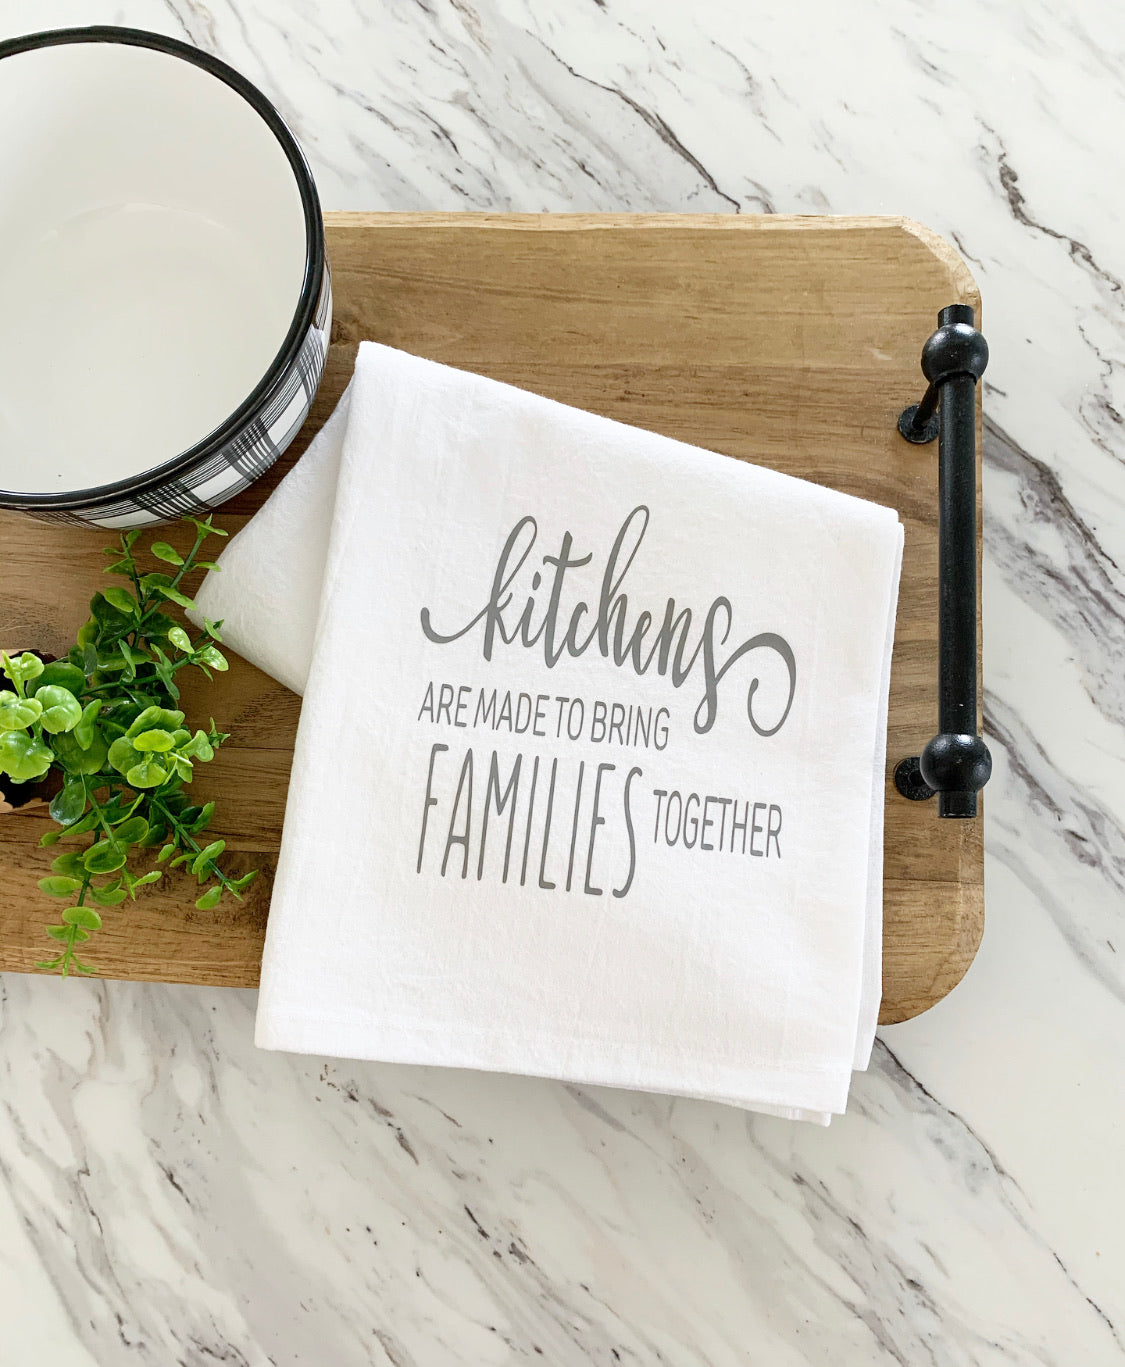 Kitchens Are Made To Bring Families Together Tea Towel